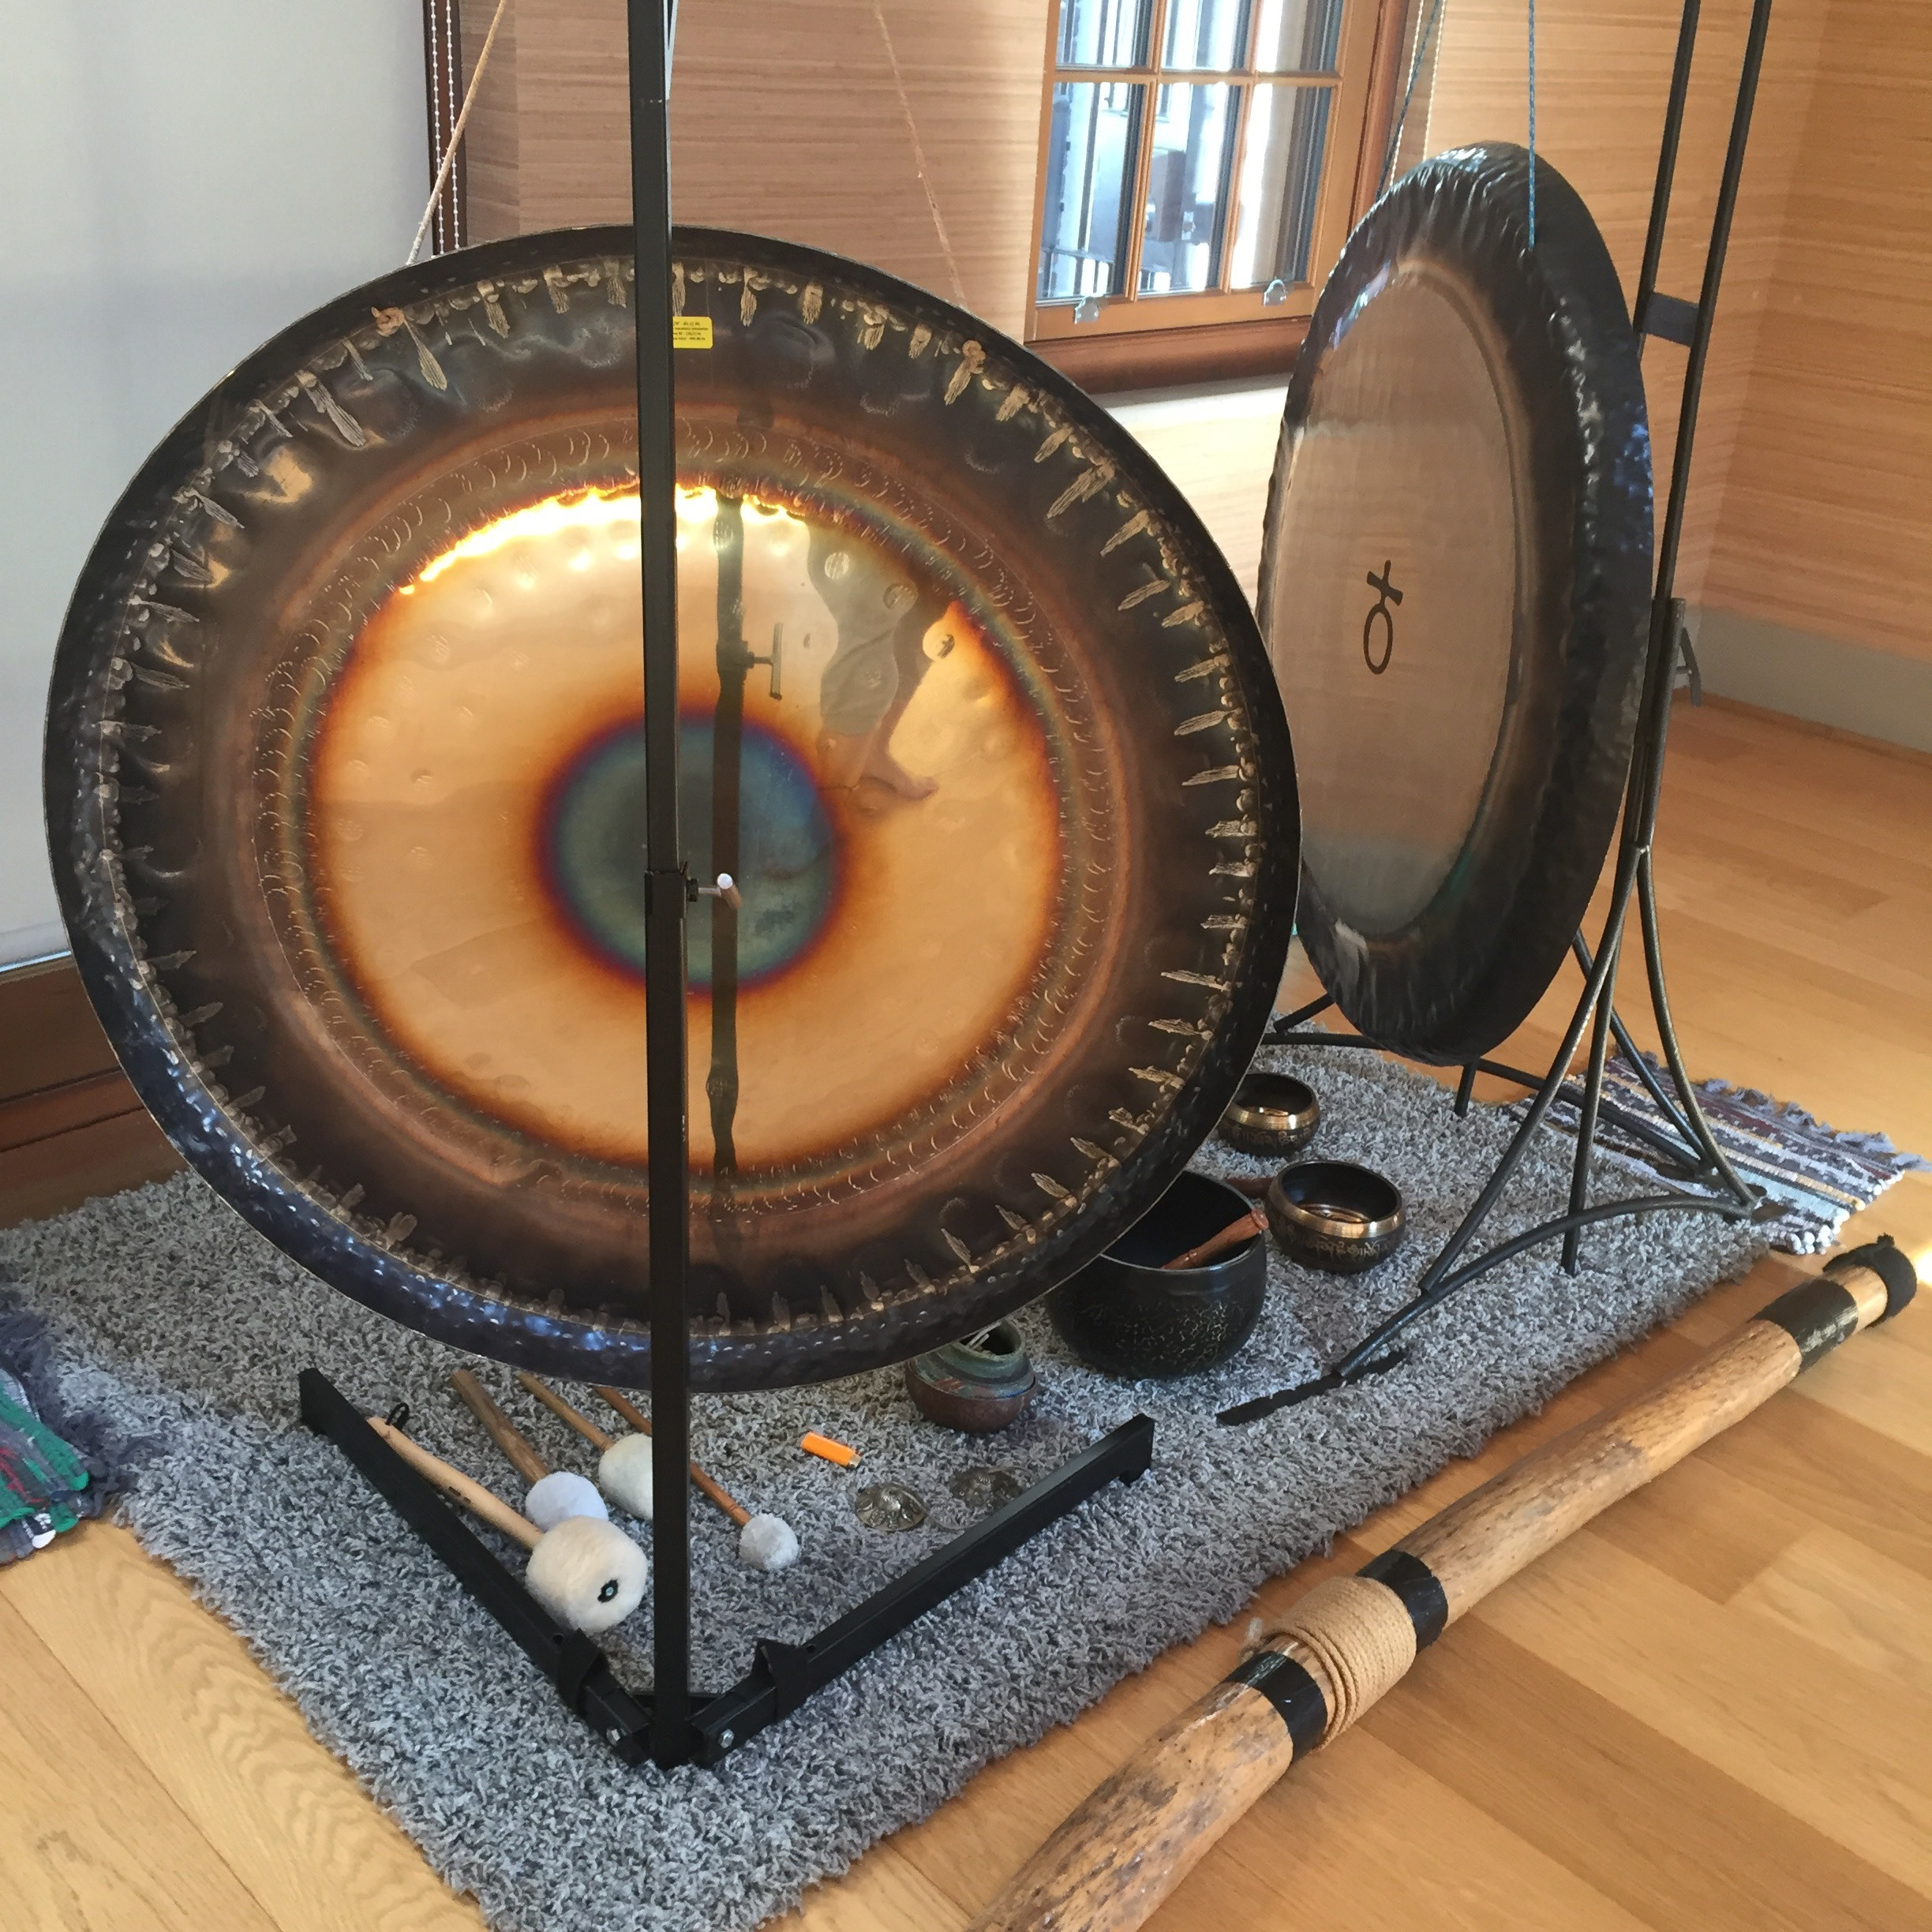 Monthly Gong Bath - Hosted every last Friday of the month our monthly Gong Bath is a relaxing sound session that calms the mind and softens the body. Find out more here.